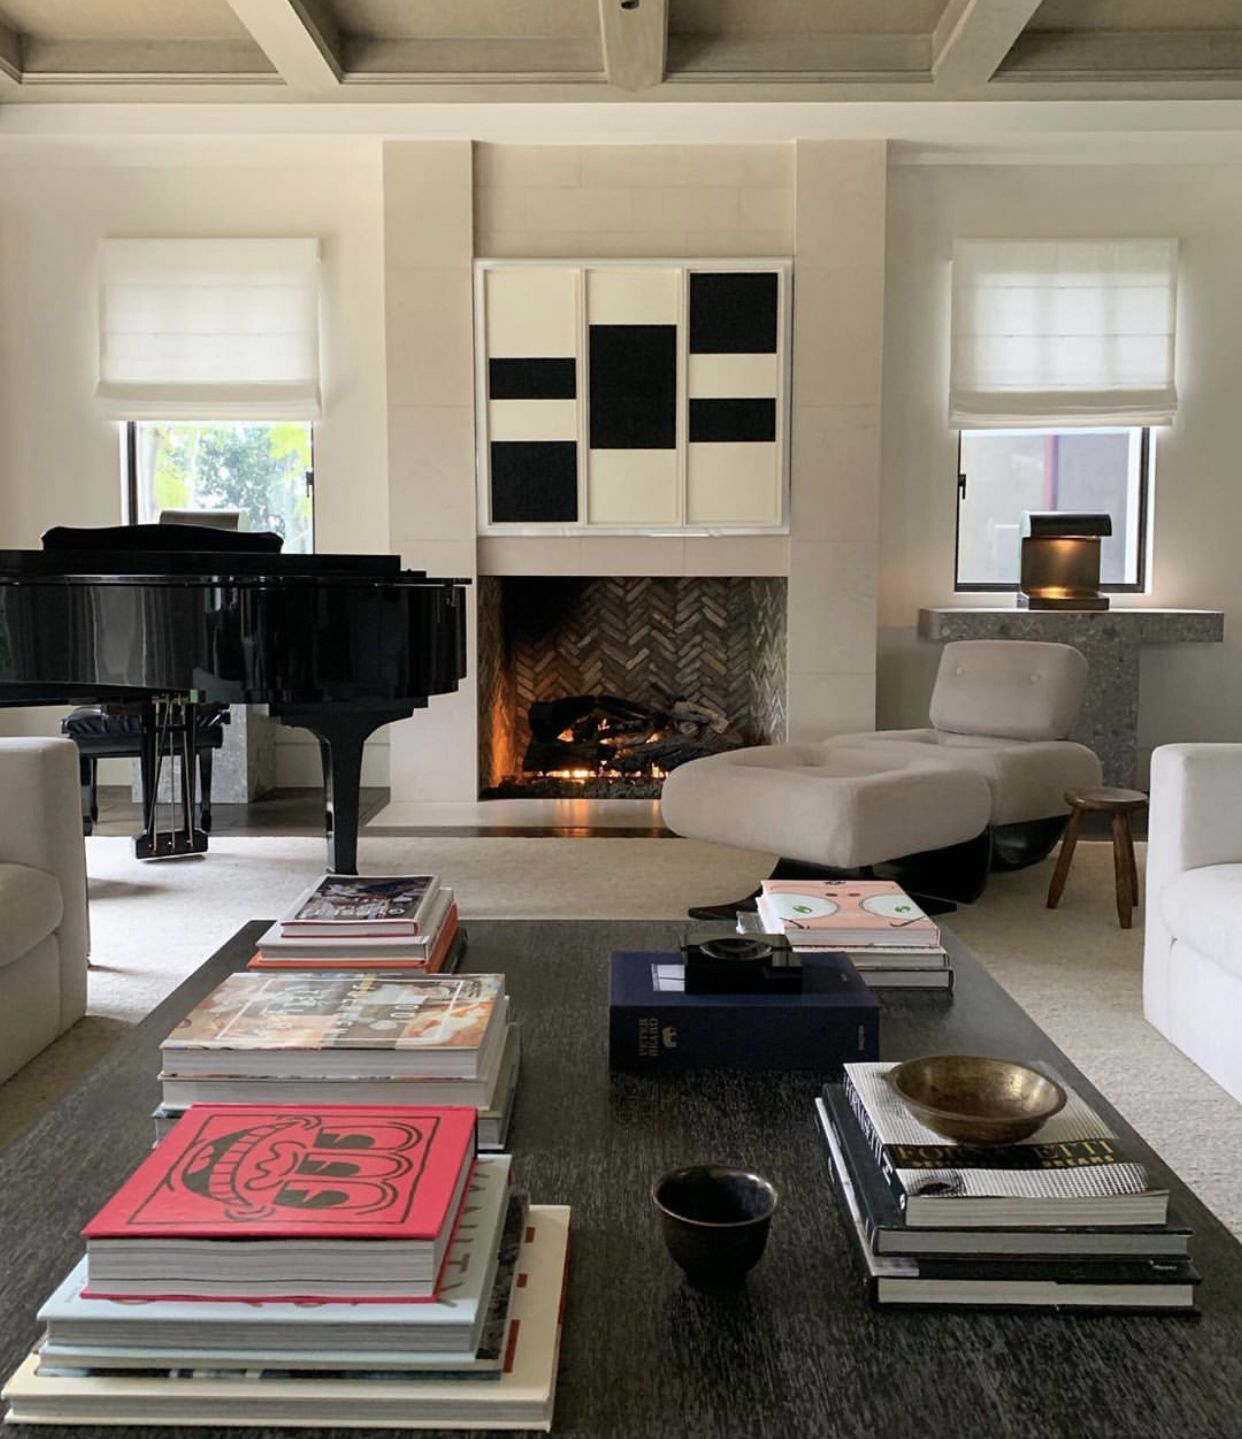 Pin By Browwitch On Apart Coffee Table Books Decor Modern Bedroom Decor Home [ 1439 x 1242 Pixel ]